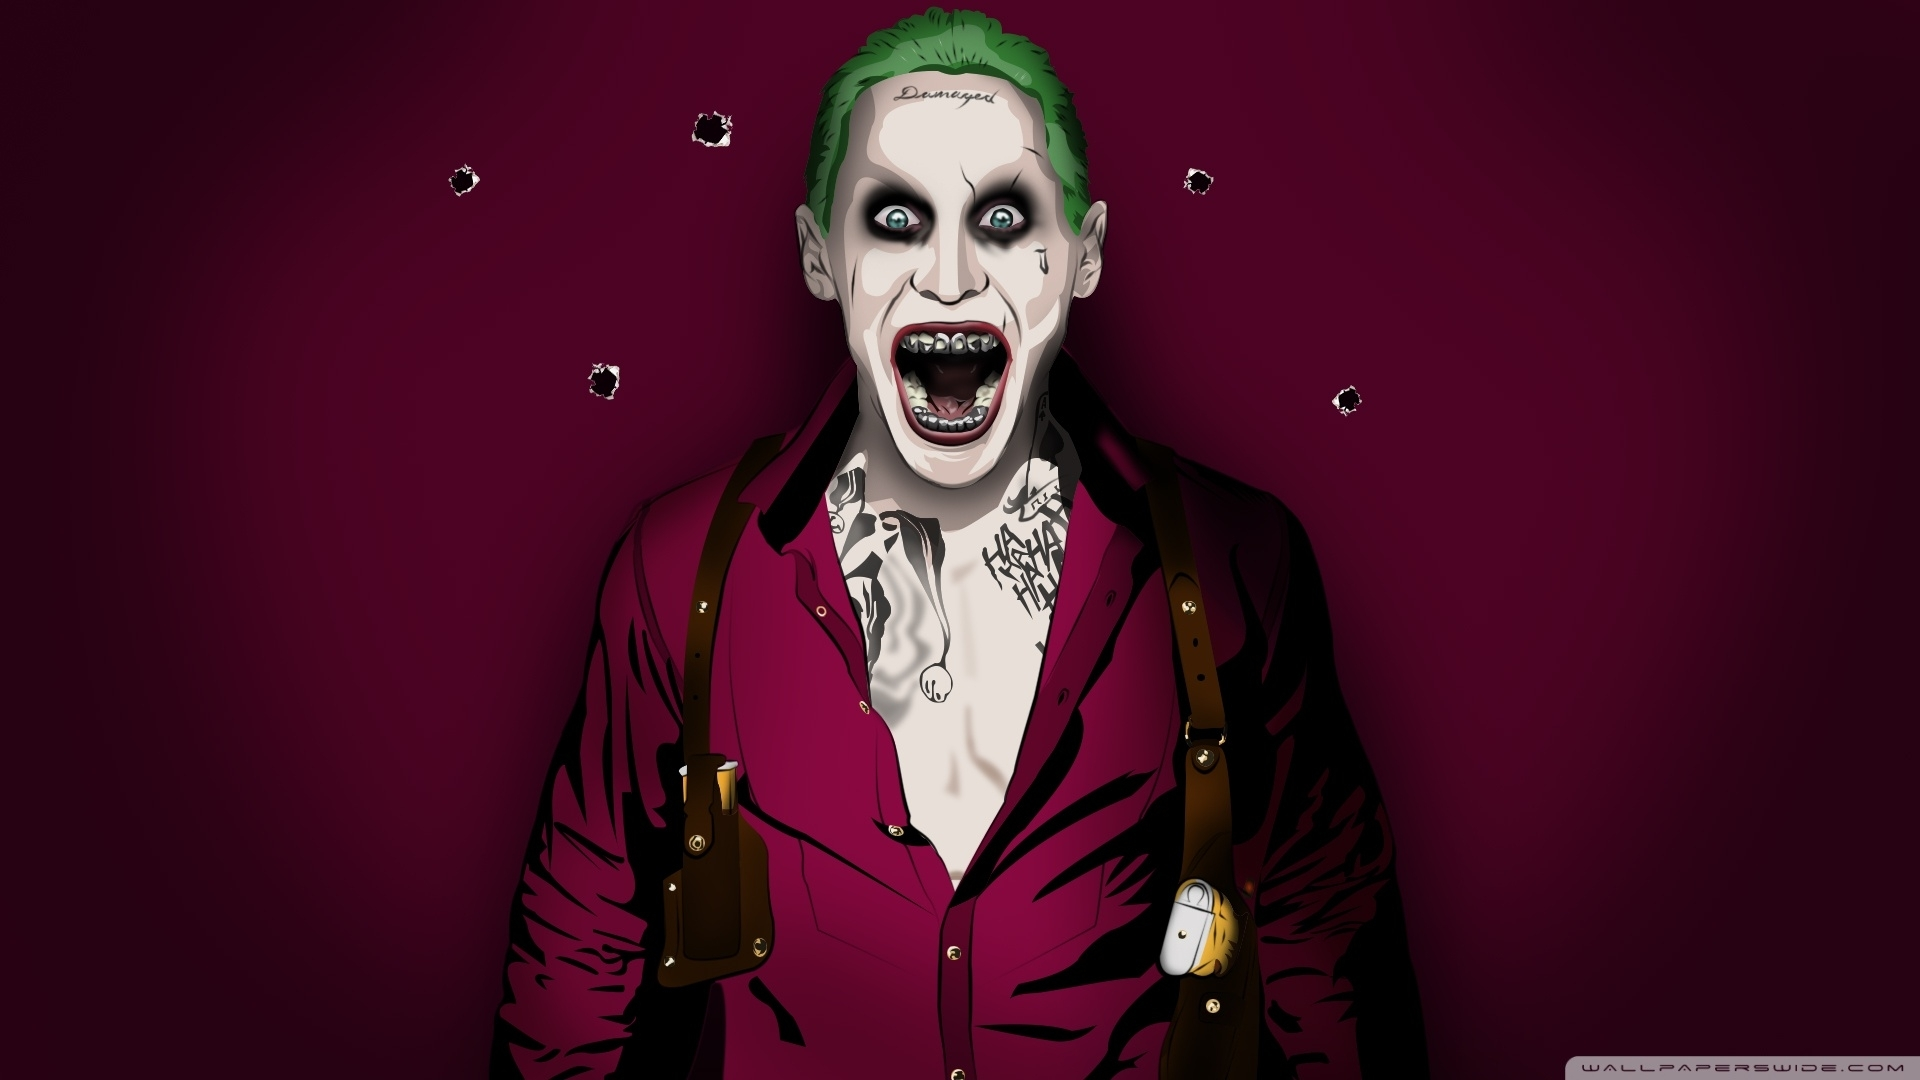 10 Latest Jared Leto Joker Wallpaper FULL HD 1080p For PC Desktop